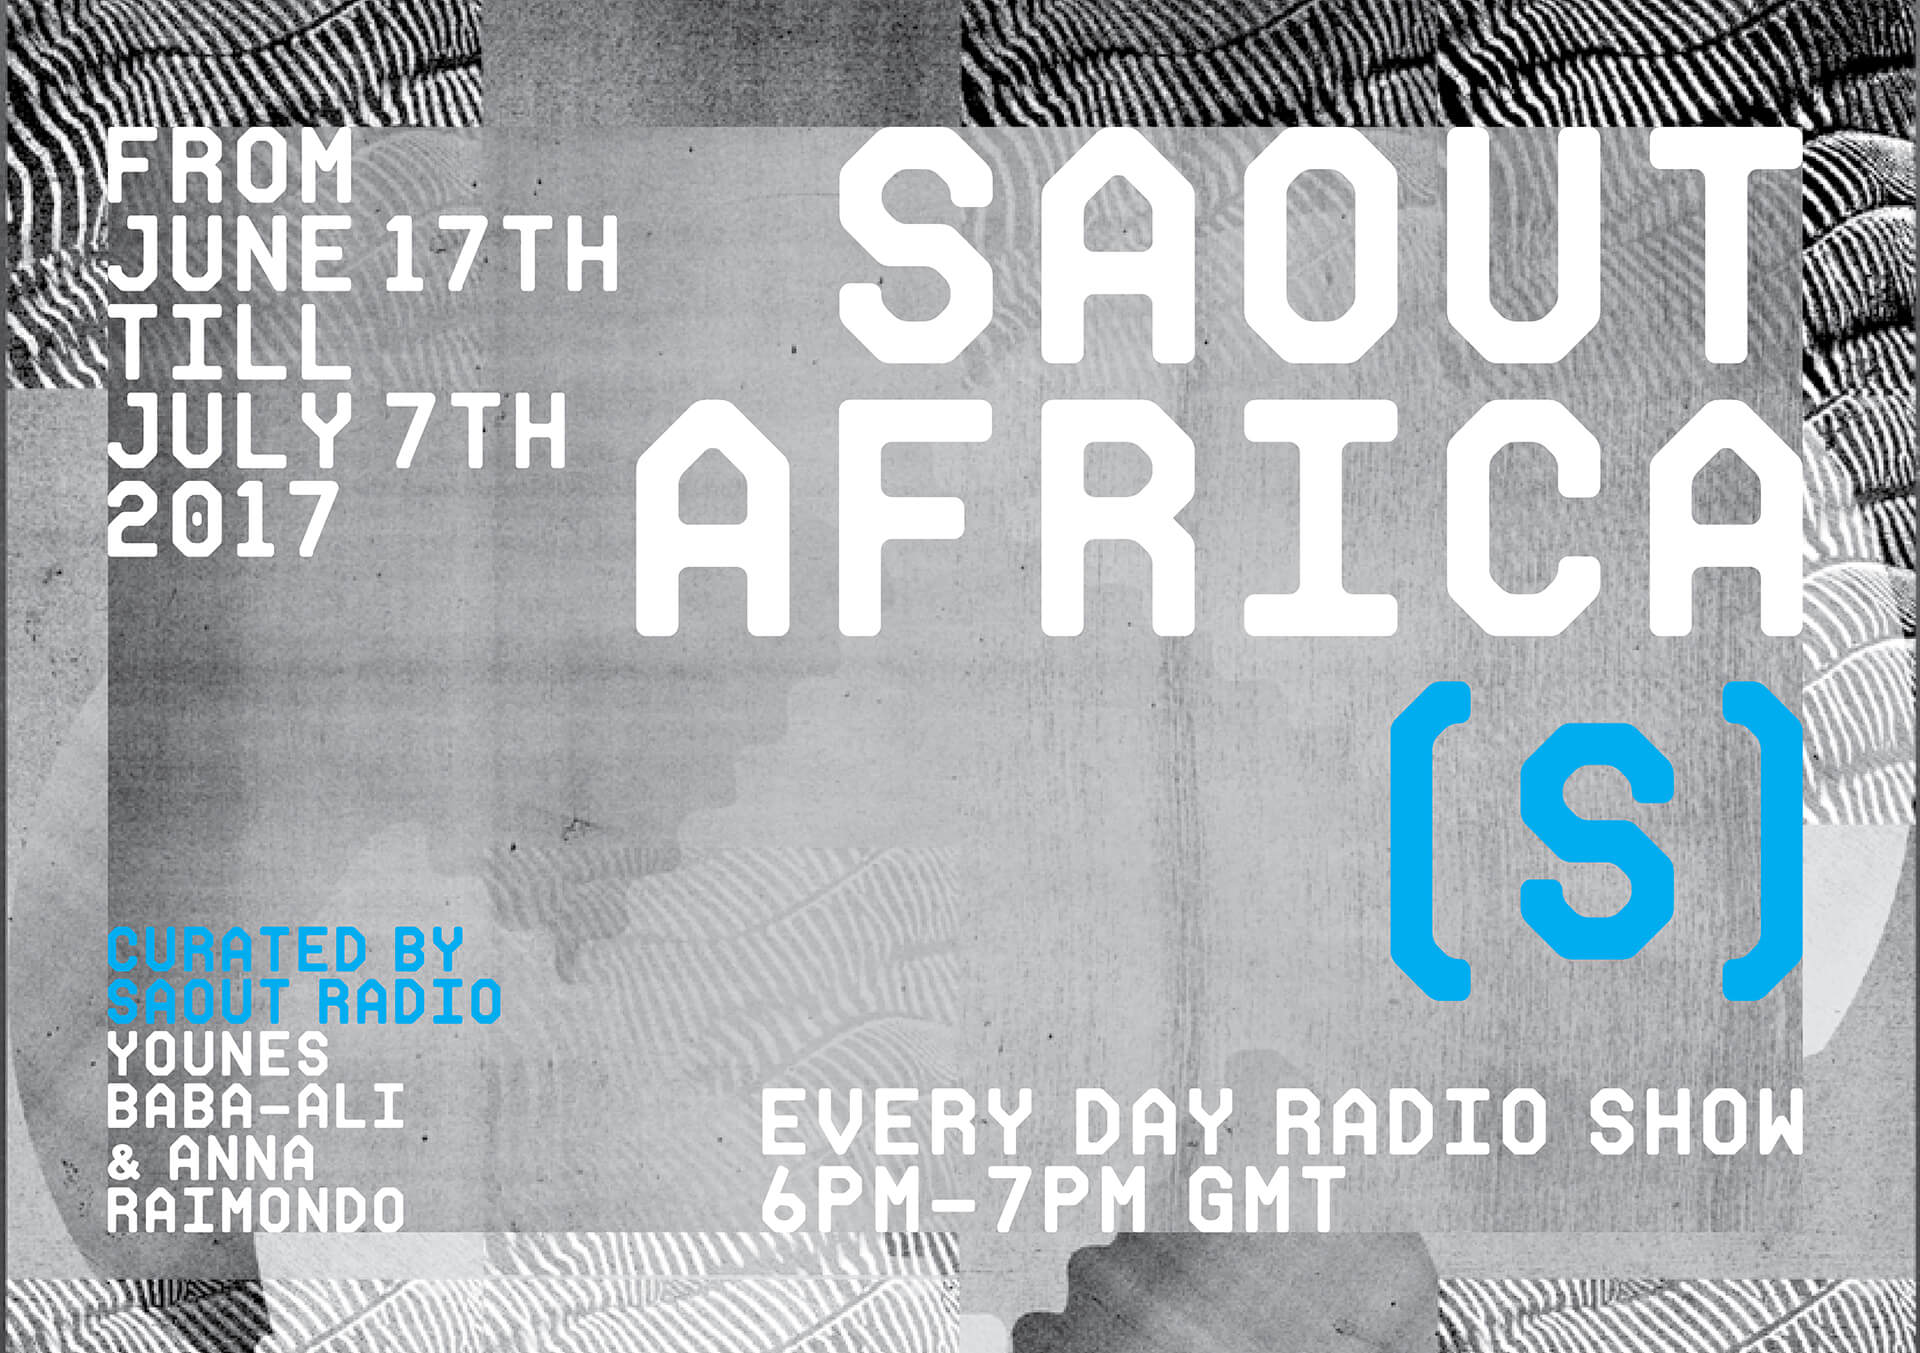 Saout Radio Saout Africa(s) documenta 14